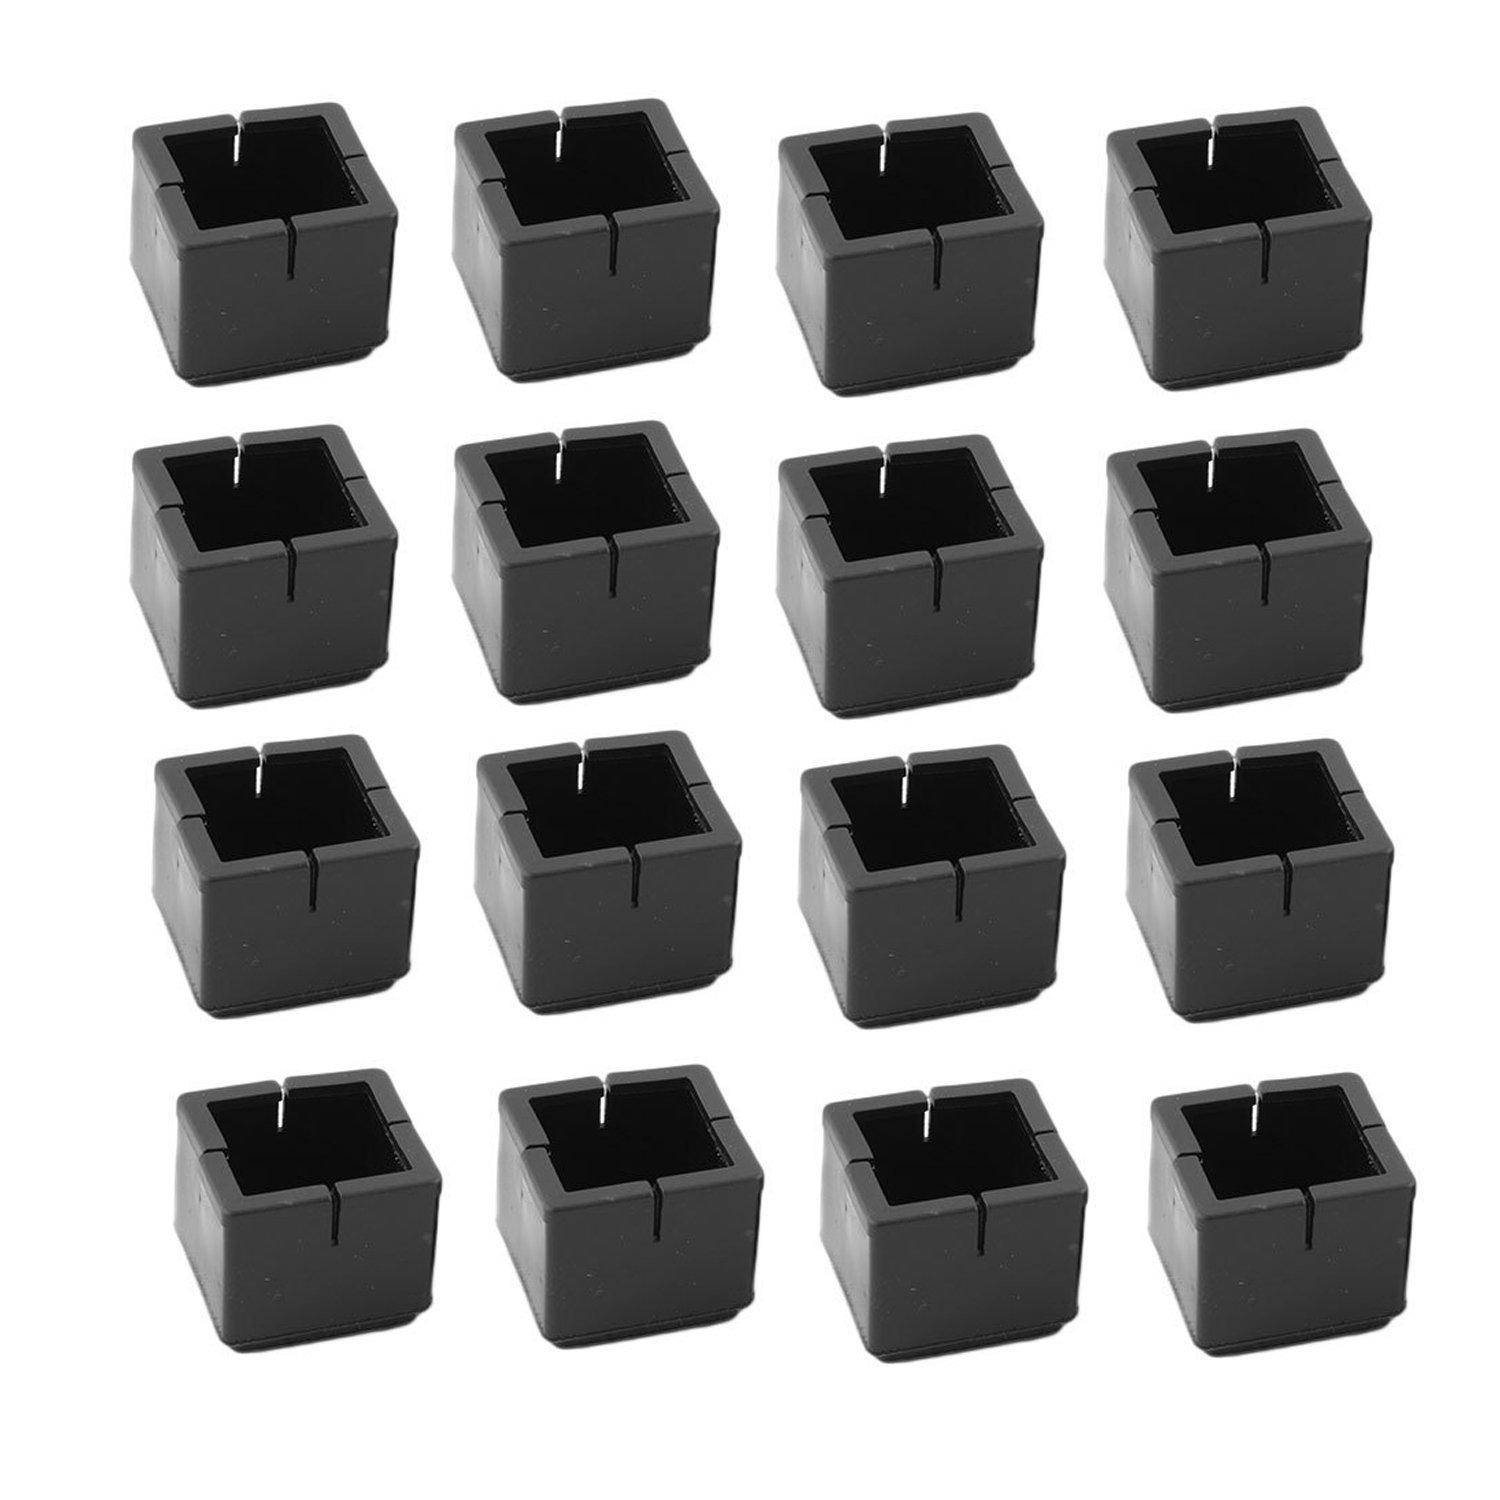 "Antrader 16pcs Black Silicone Furniture Pads Square Shape Floor Protector Chair Sofa Non-Slip Feet Pad Leg Cap with Felt Pads Fit 1-1/8 to 1-3/8"" (3.1-3.6cm)"